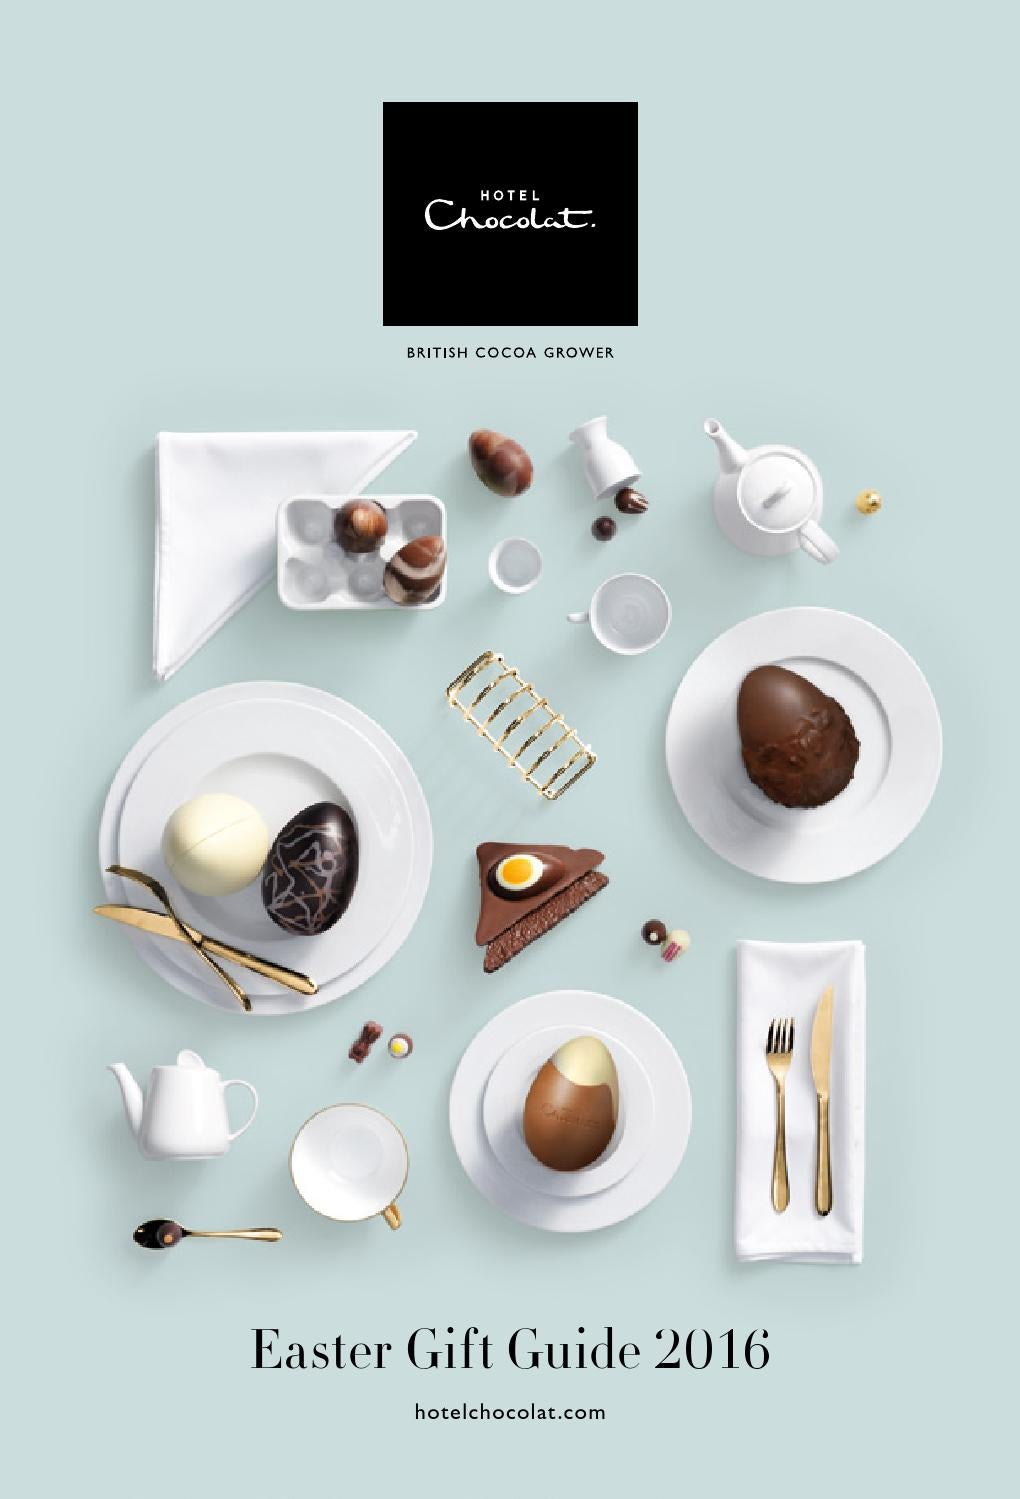 Hotel chocolat easter gift guide 2016 by hotel chocolat issuu negle Image collections